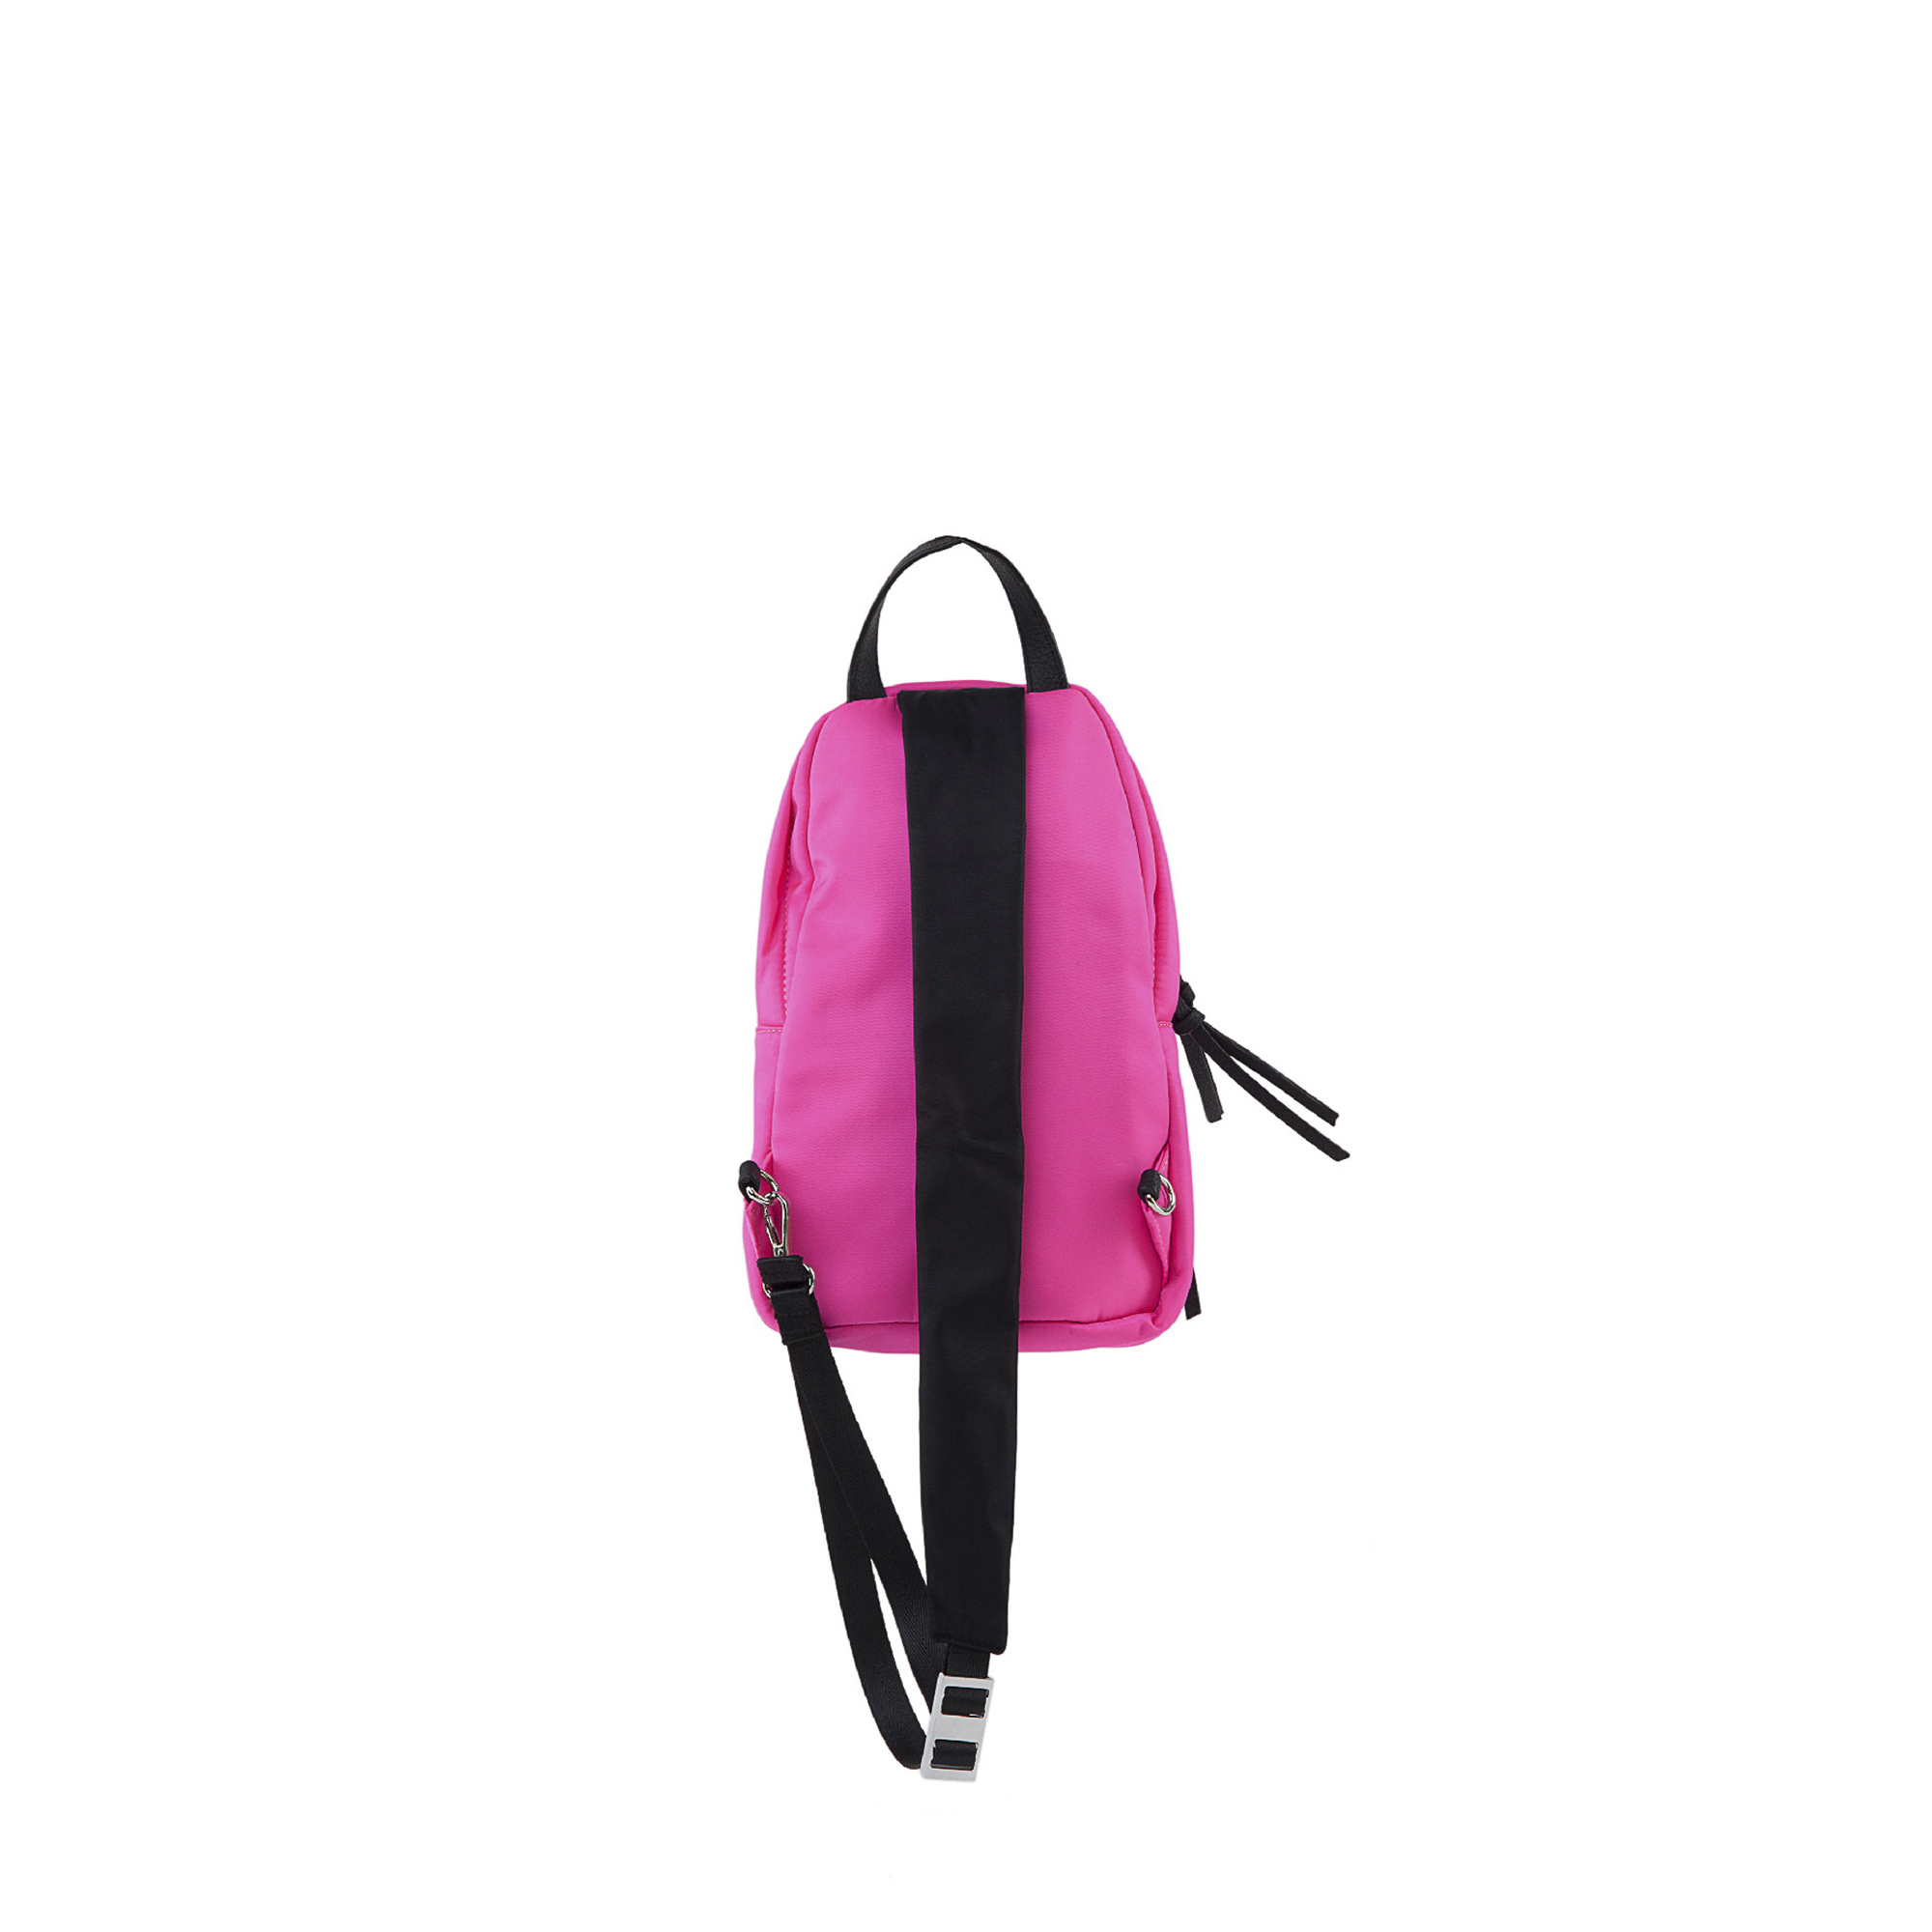 BACKPACK - GBDA1153 - GAELLE PARIS